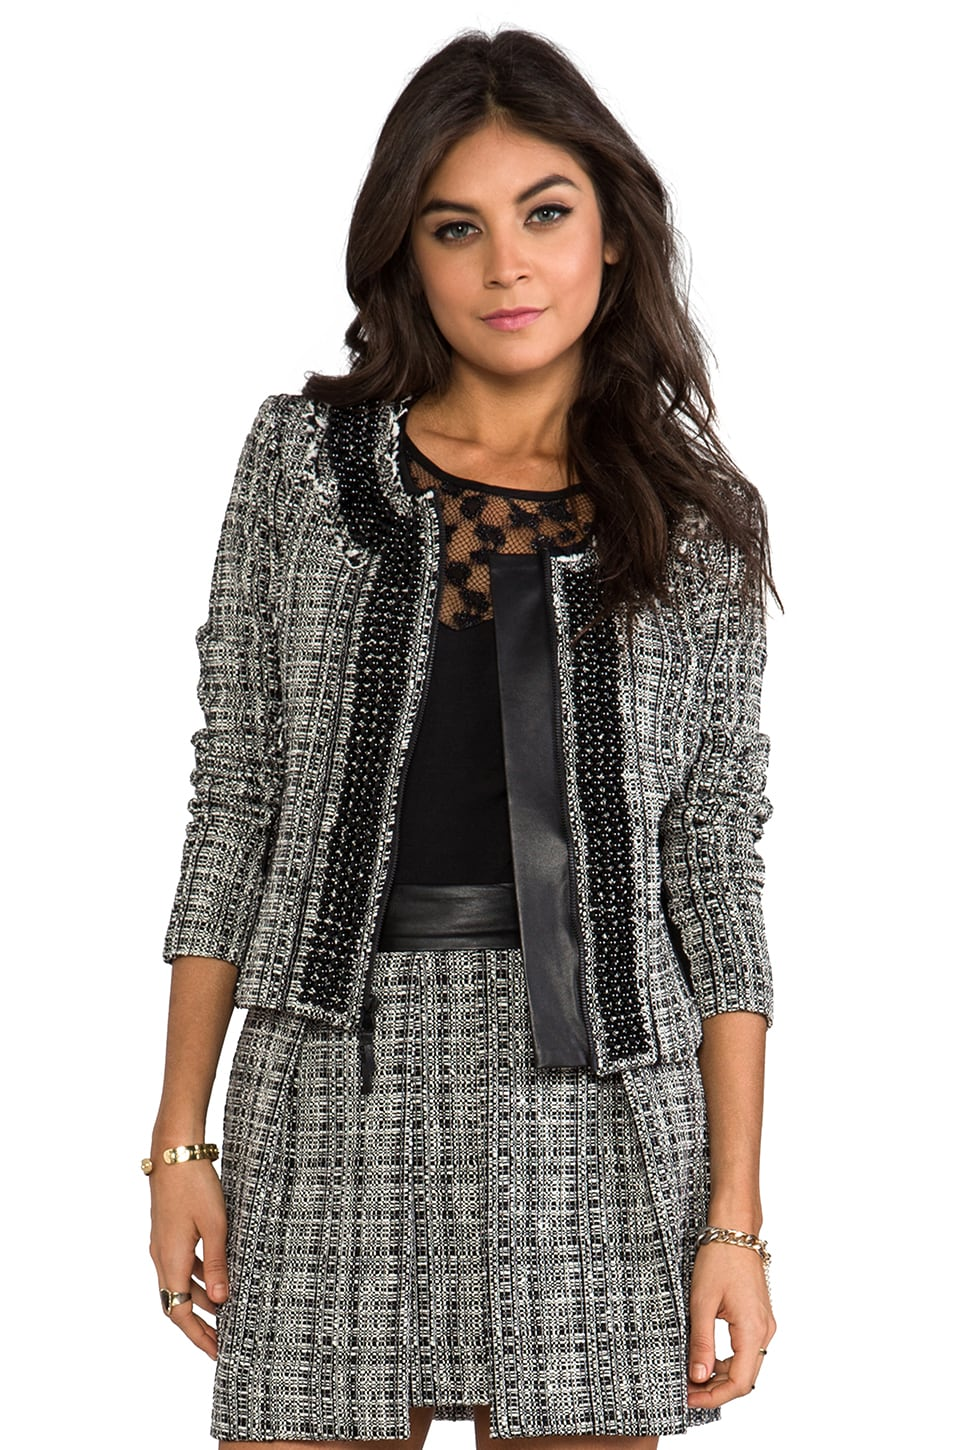 MILLY Black and White Tweed Jacket in Black